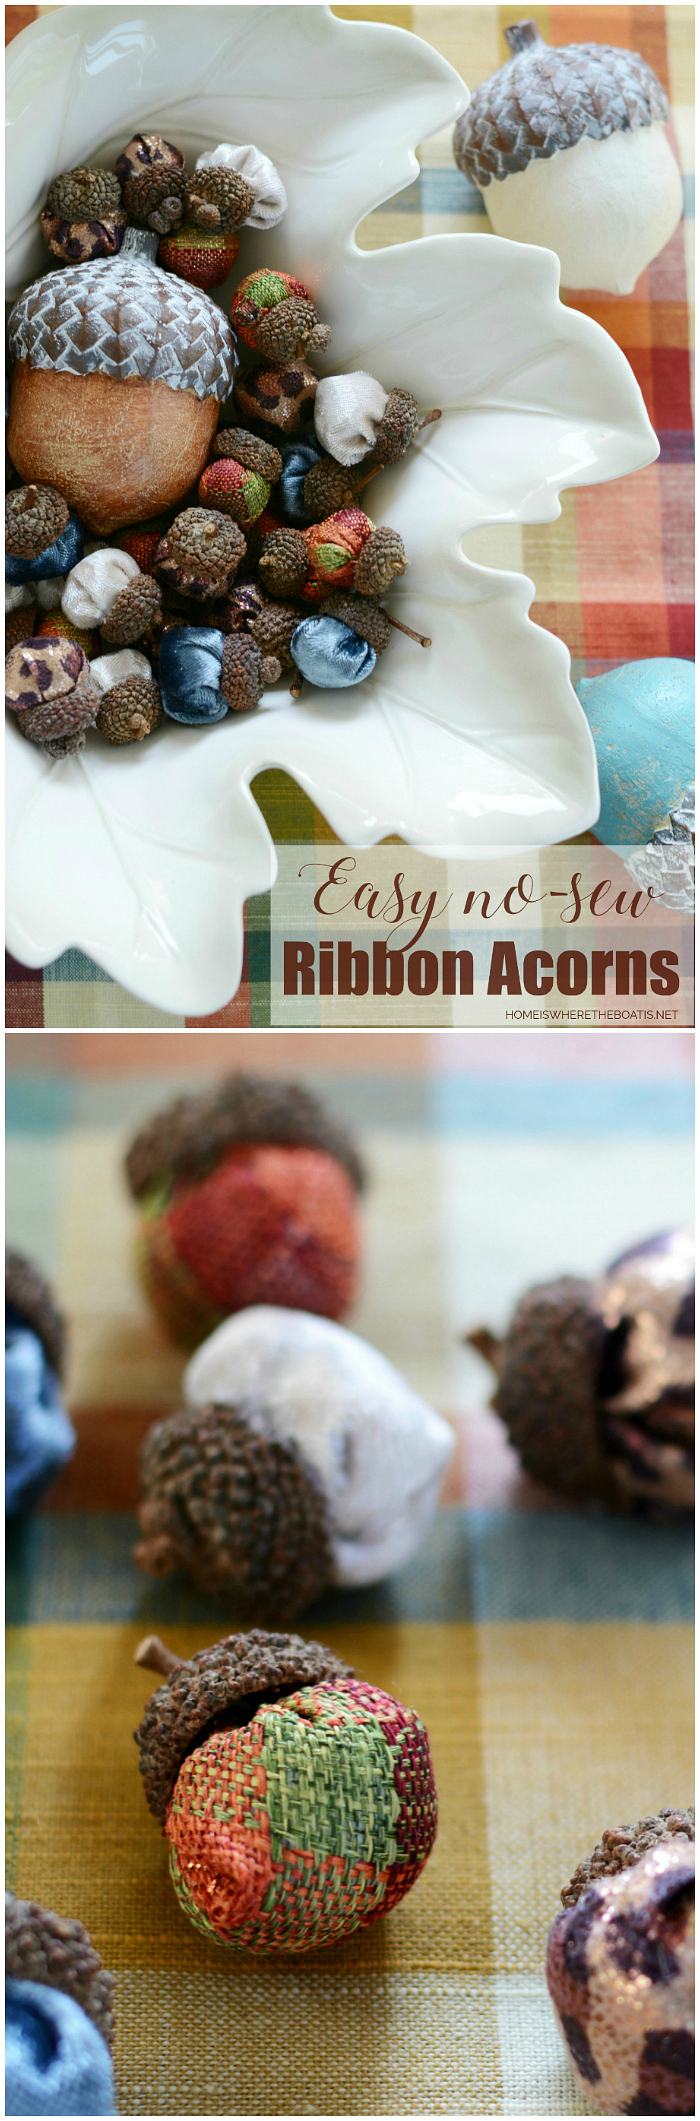 Easy No-Sew Ribbon Acorns | ©homeiswheretheboatis.net #fall #DIY #acorns